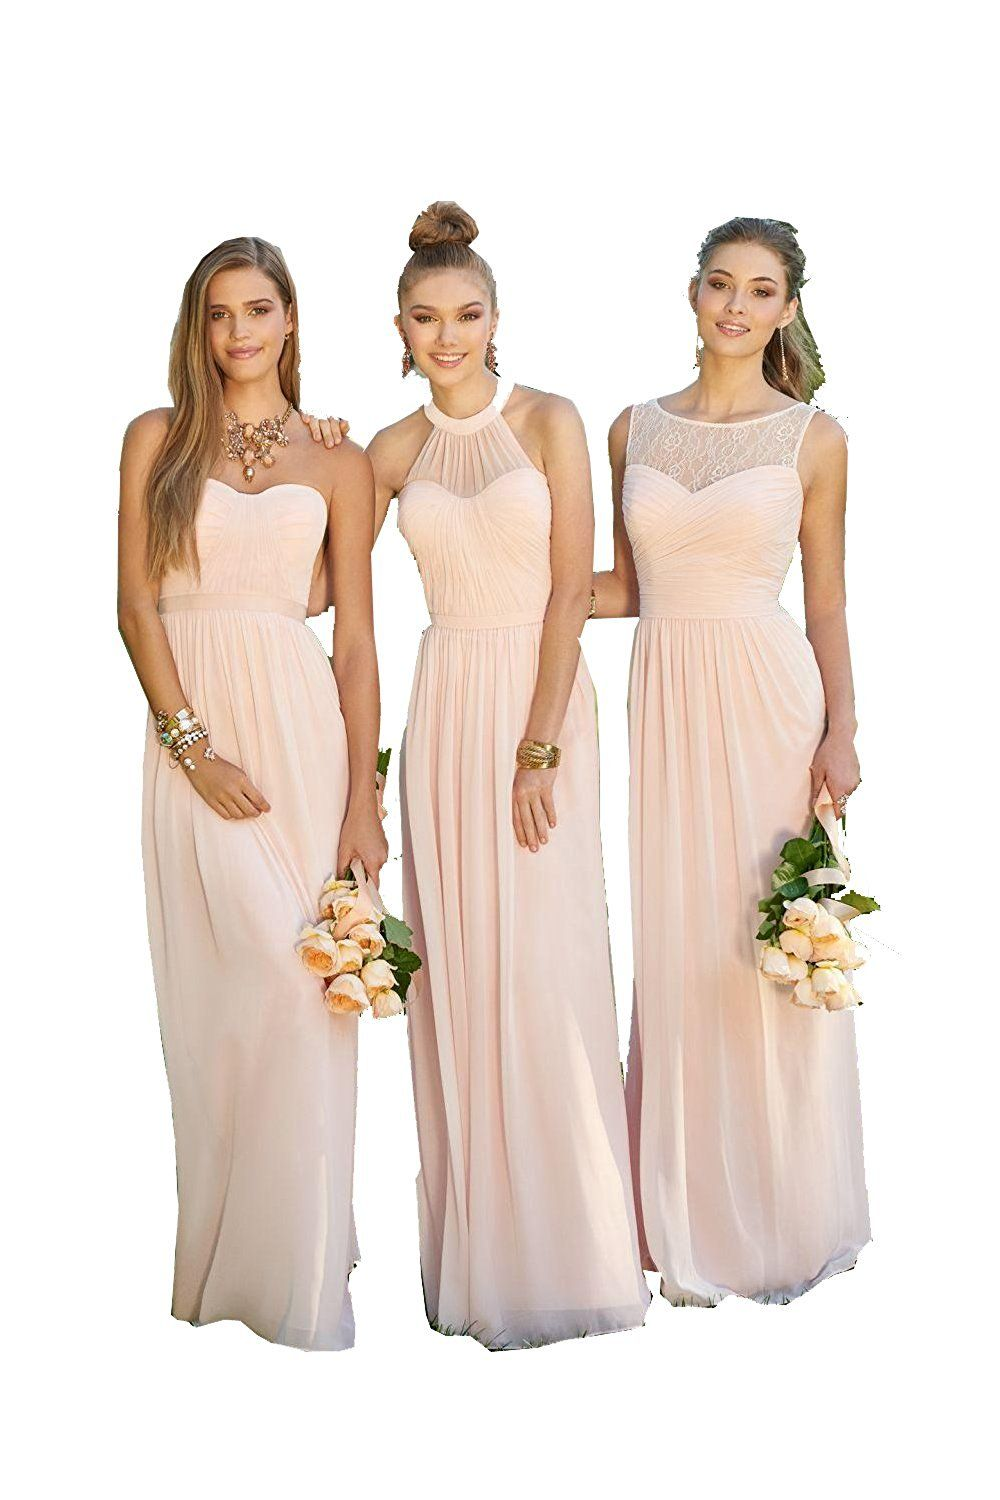 Caradress mixed style chiffon bridesmaid dress long party prom